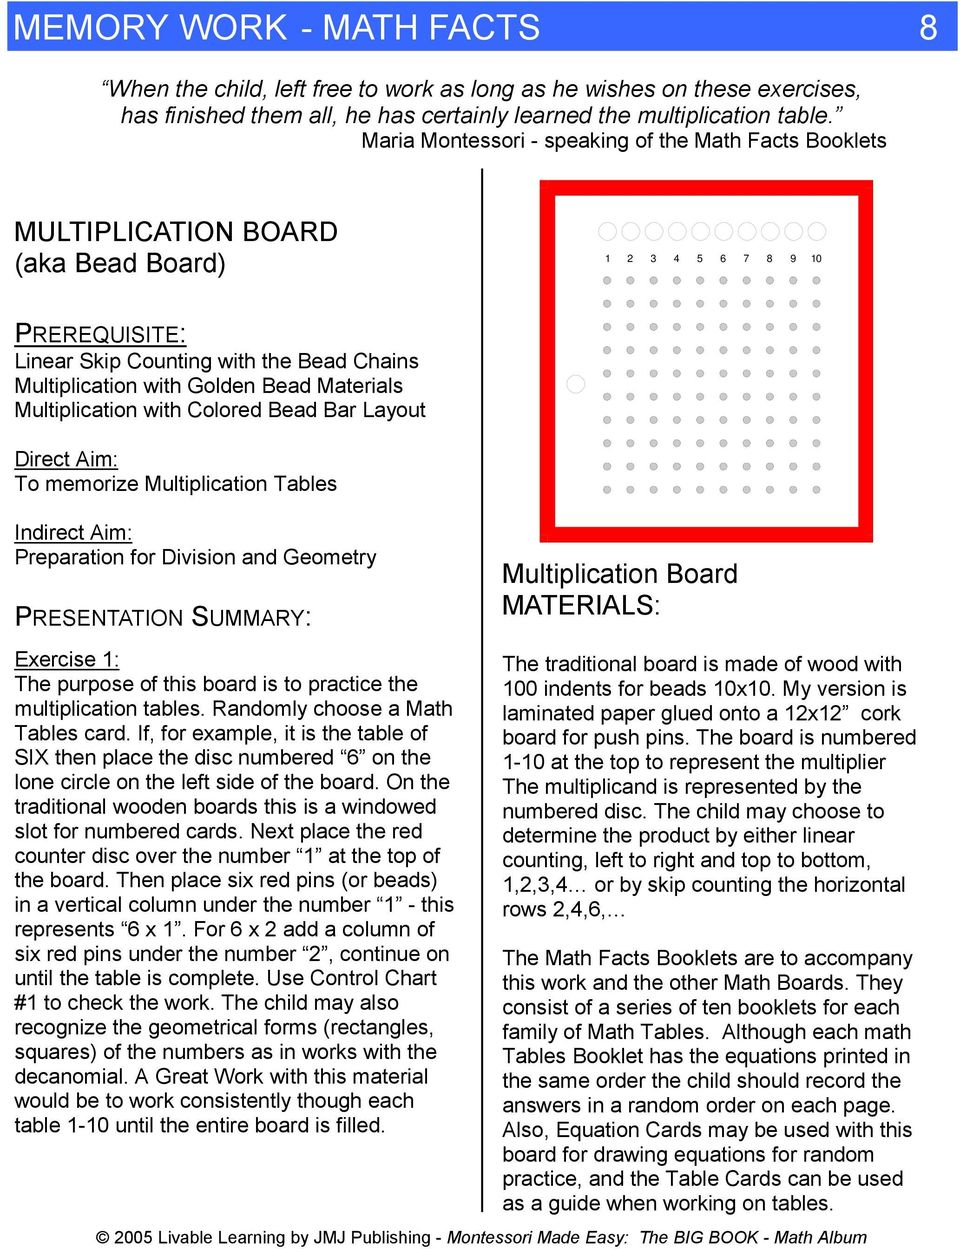 Colored Bead Bar Layout To memorize Multiplication Tables Preparation for Division and Geometry PRESENTATION SUMMARY: Multiplication Board MATERIALS: Exercise : The purpose of this board is to